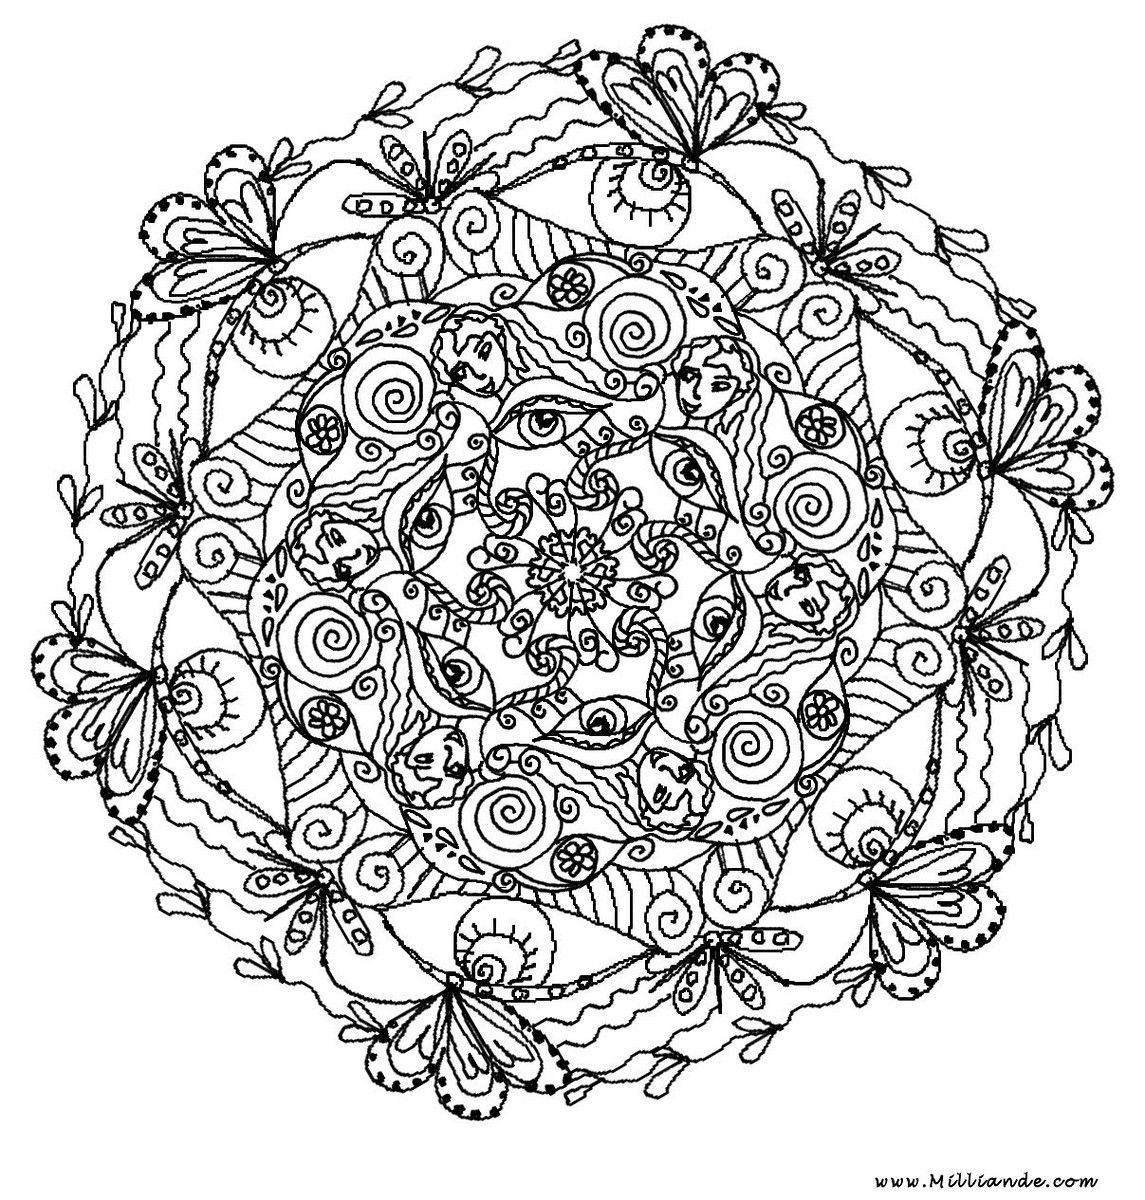 Free coloring pages for adults - Center Yourself With Mandalas Coloring Pages